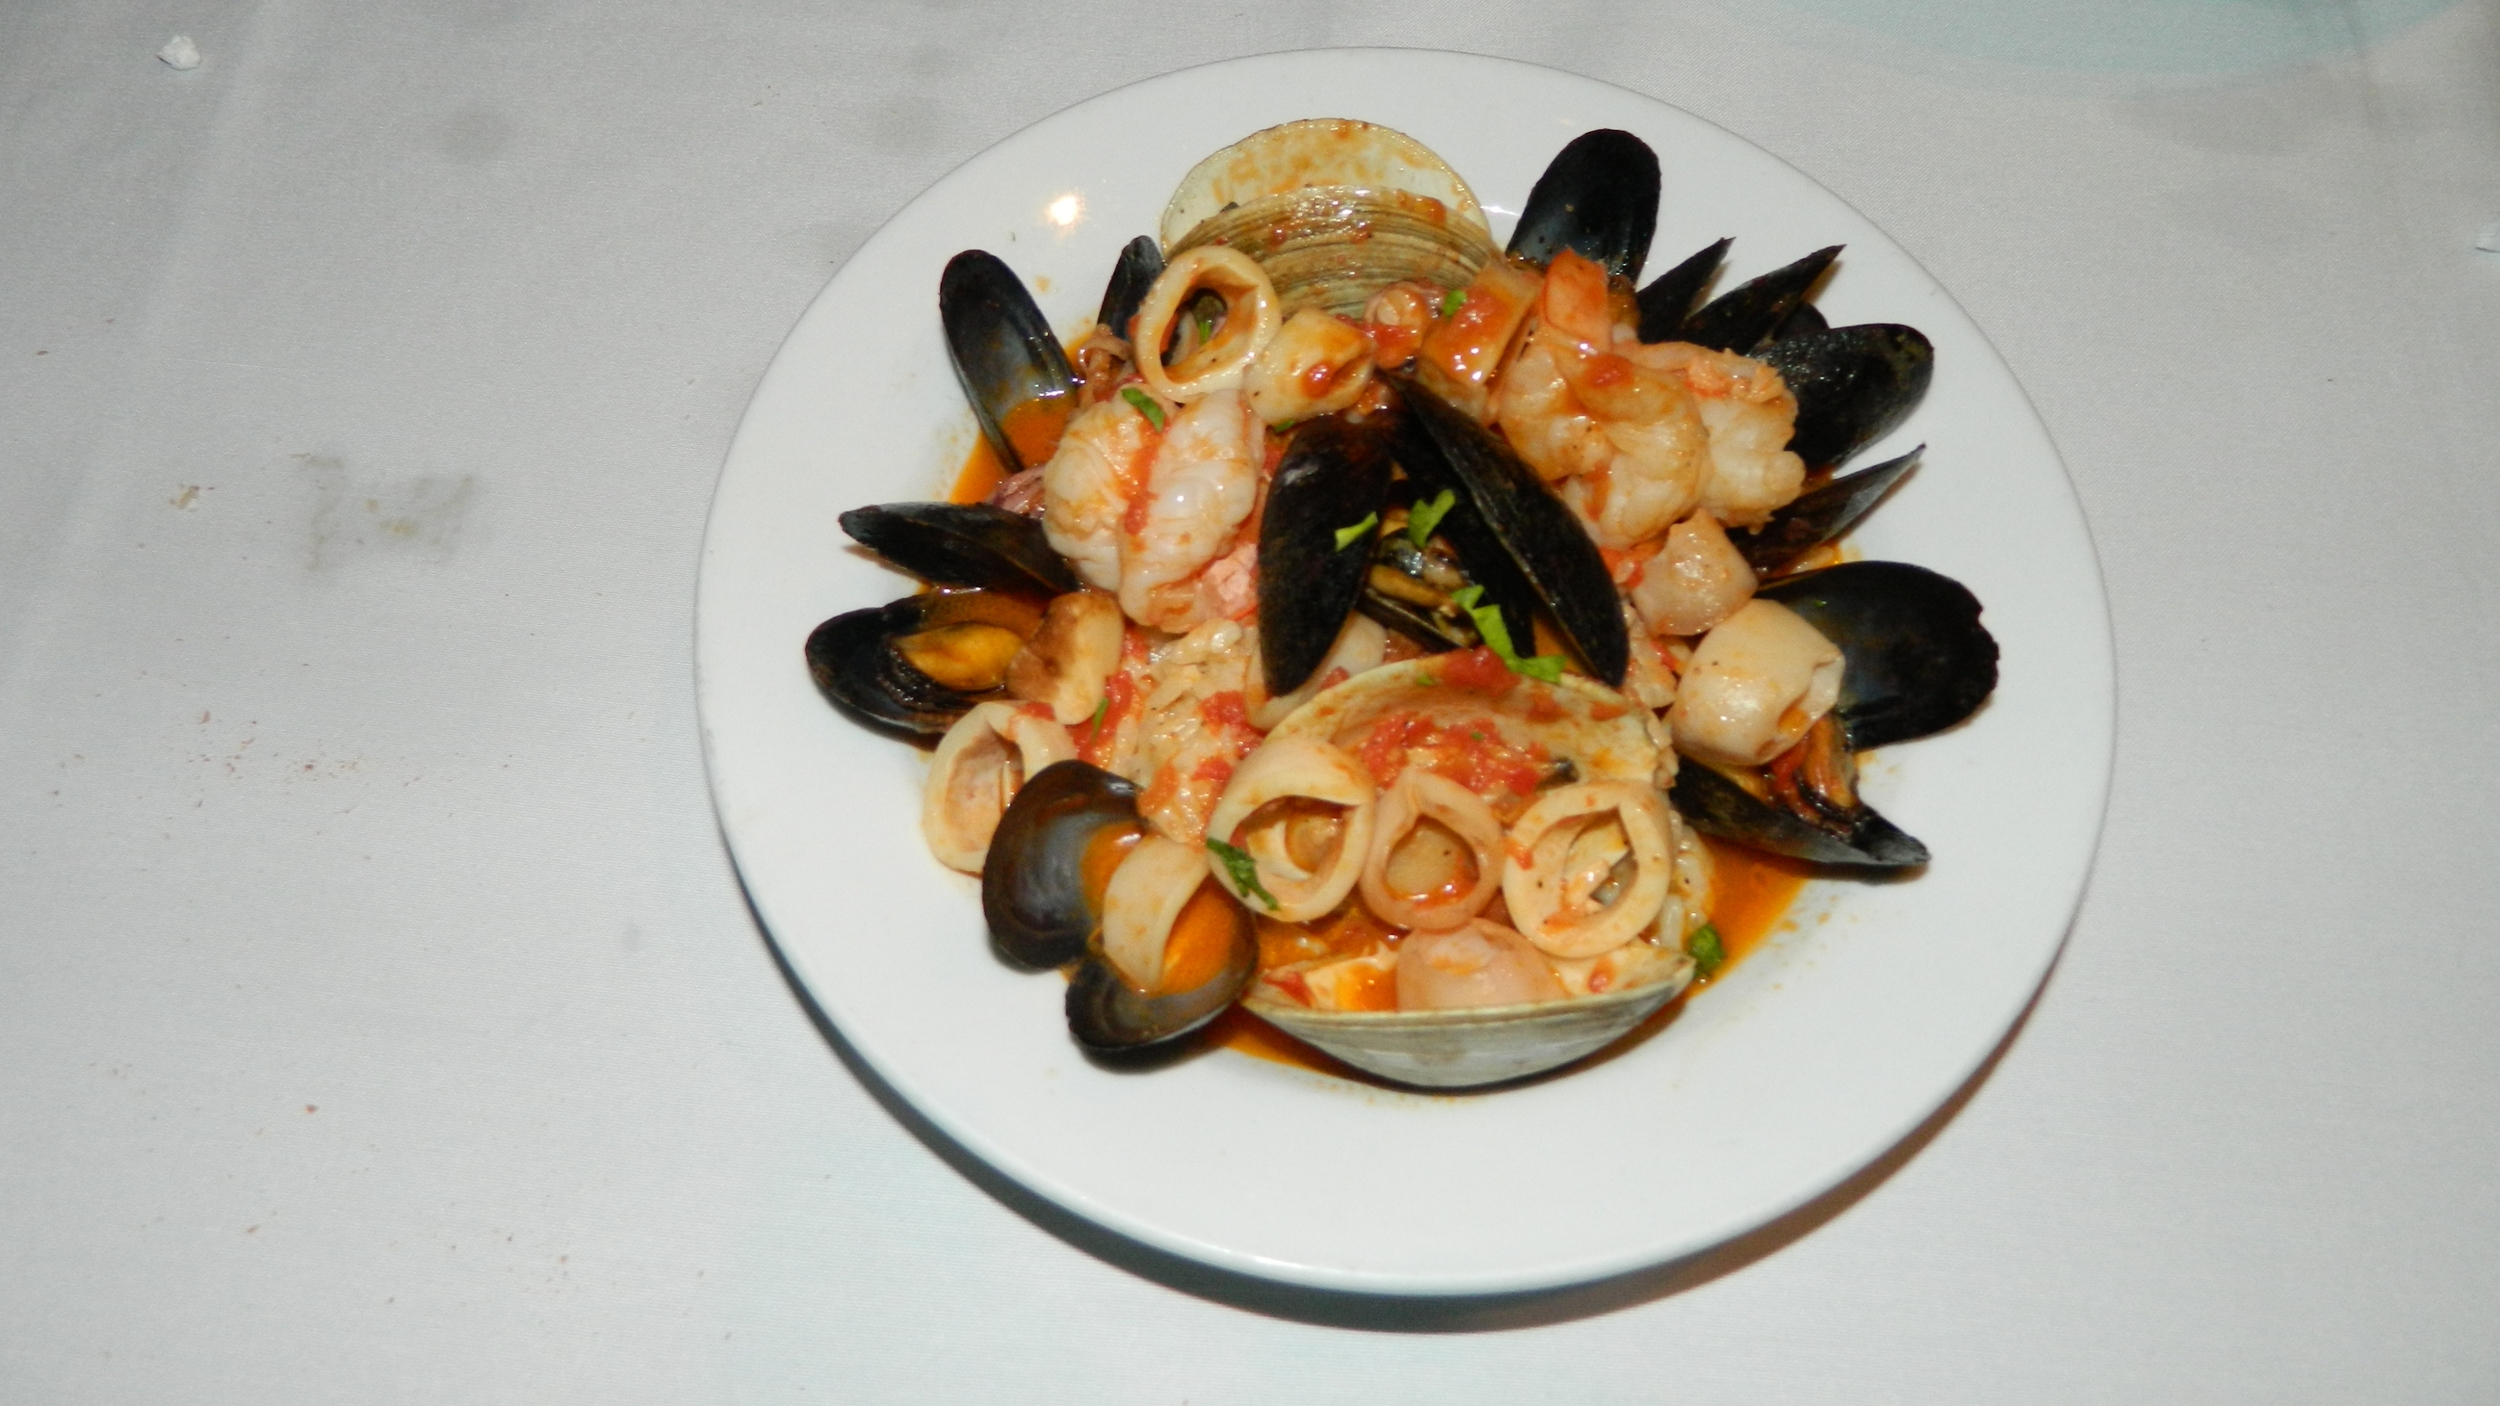 The seafood risotto is among the prime entrees at Andrea's 25.